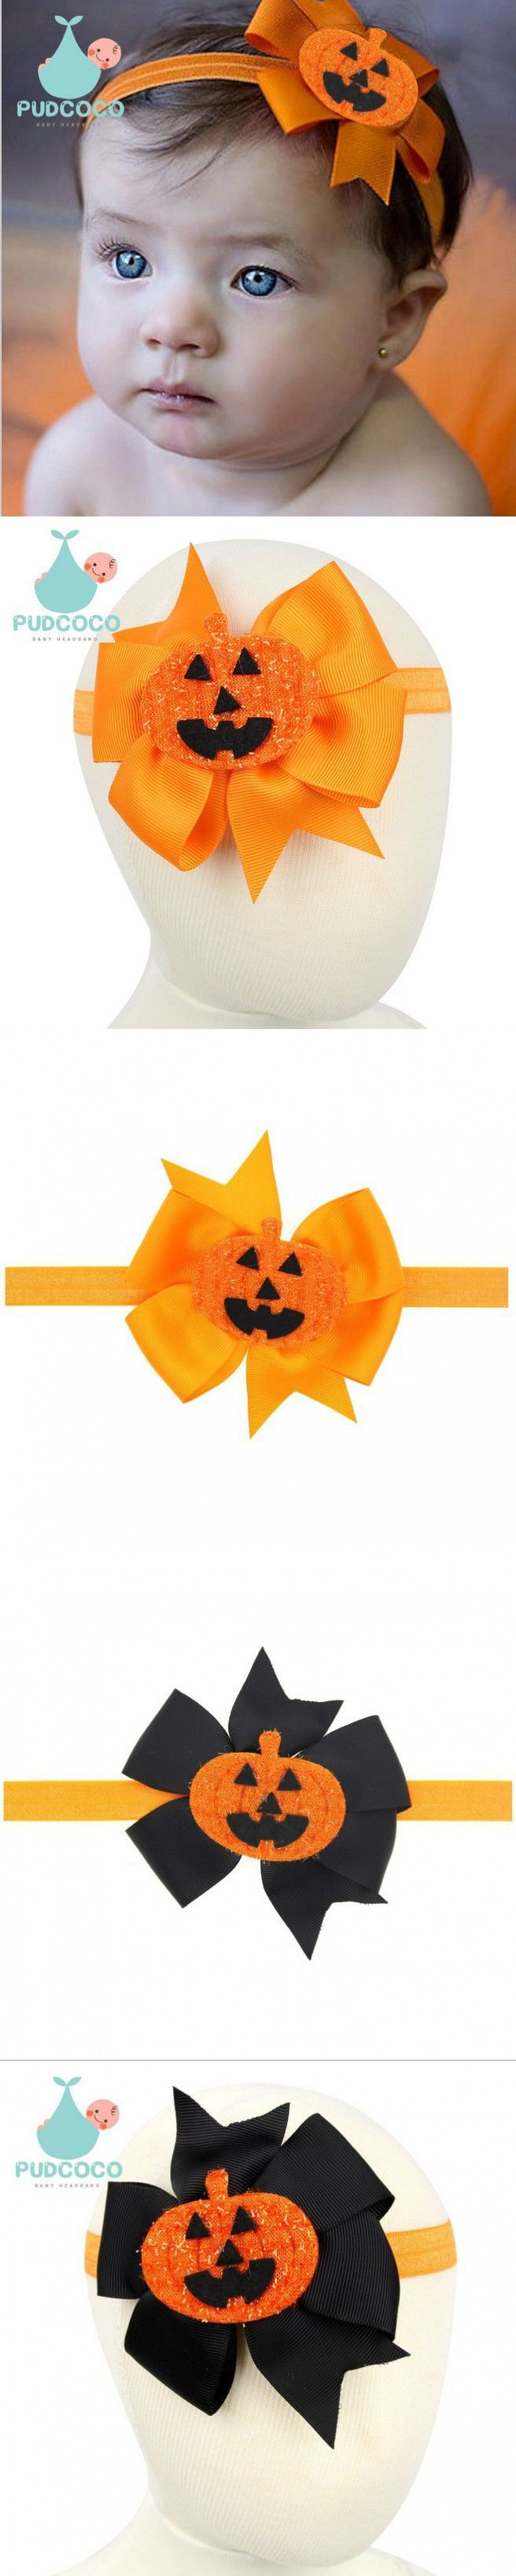 1 pieces New Arrive Halloween Style Baby Golden Bow Knot Horror Pumpkin Head Hair Band Baby Headband Elasticity Accessories W152